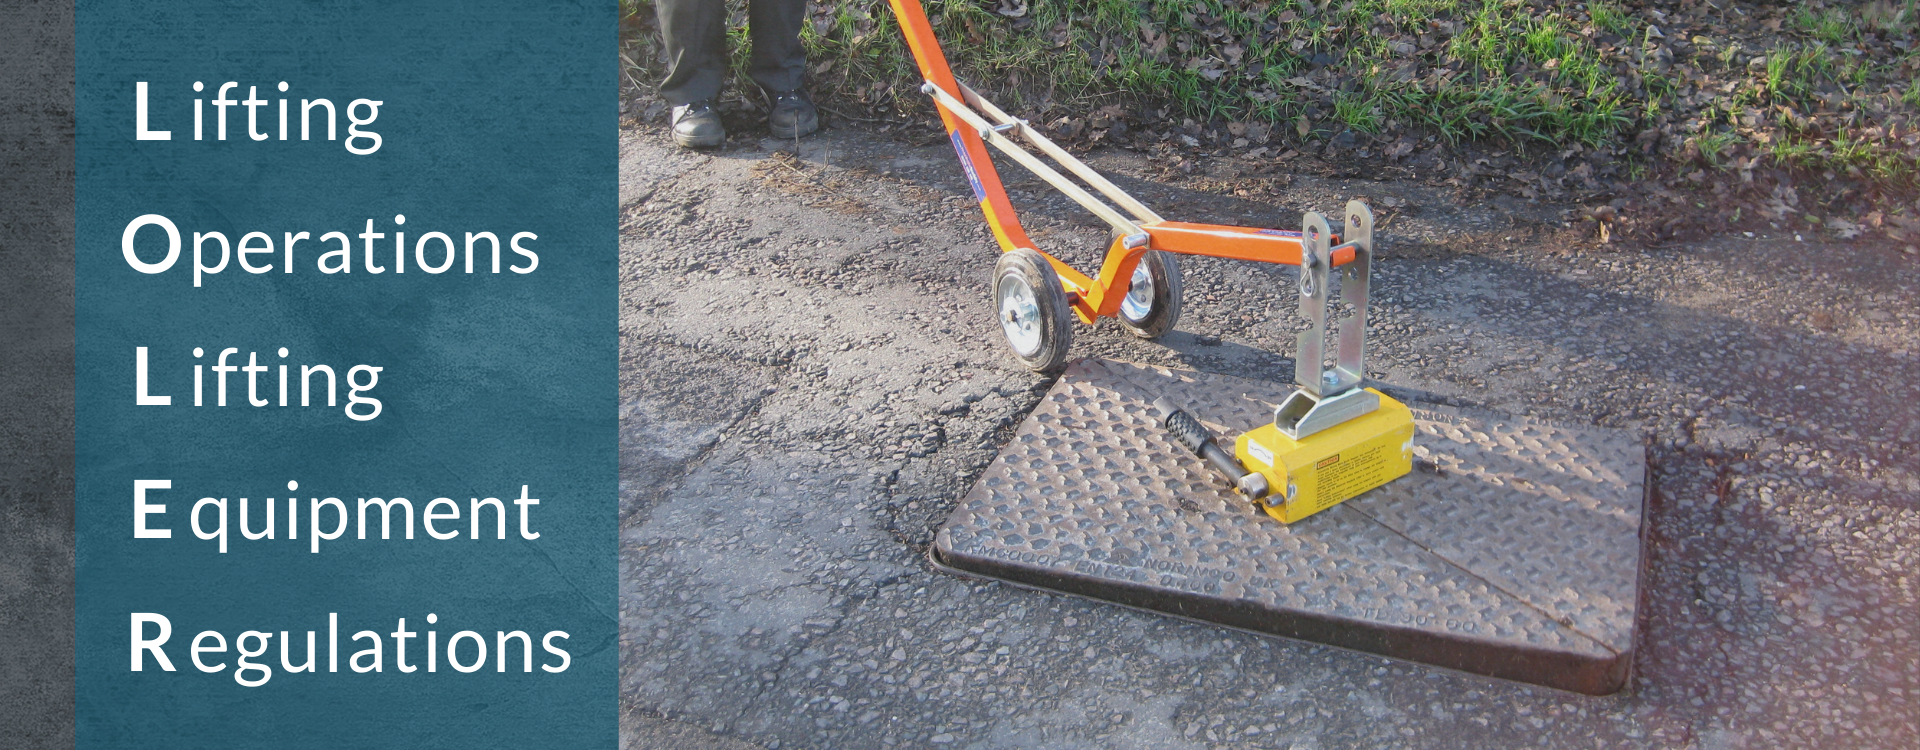 LOLER - How does it apply to Manhole Cover Lifters   Sunrise Tools